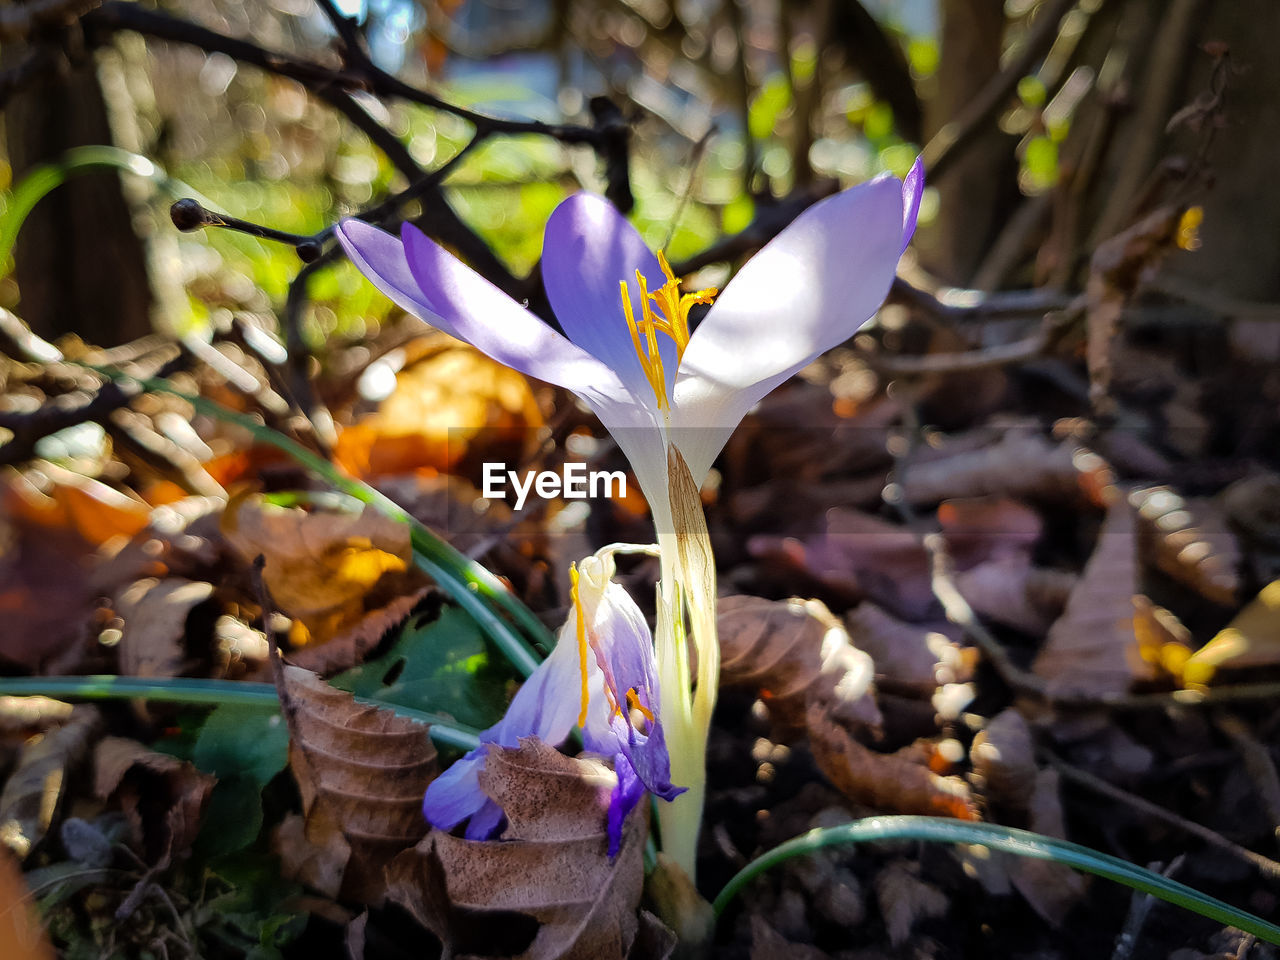 flowering plant, flower, vulnerability, fragility, plant, beauty in nature, petal, freshness, growth, close-up, iris, purple, flower head, inflorescence, nature, focus on foreground, day, no people, field, crocus, iris - plant, outdoors